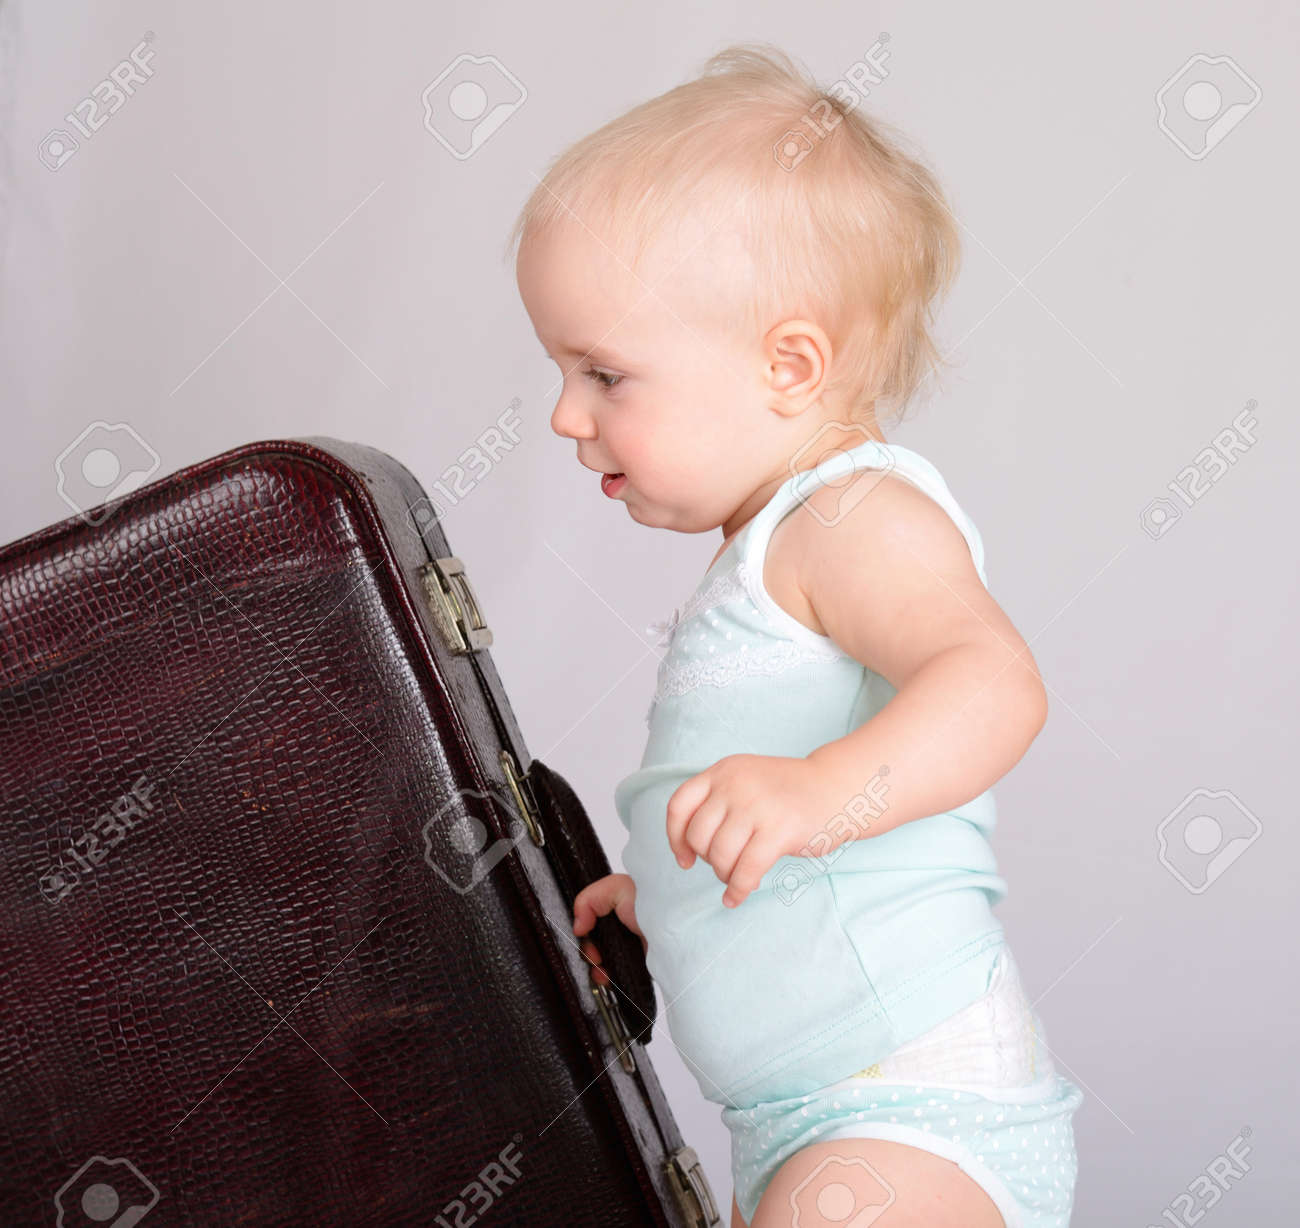 cute baby girl playing with suitcase on grey background Stock Photo - 18124750